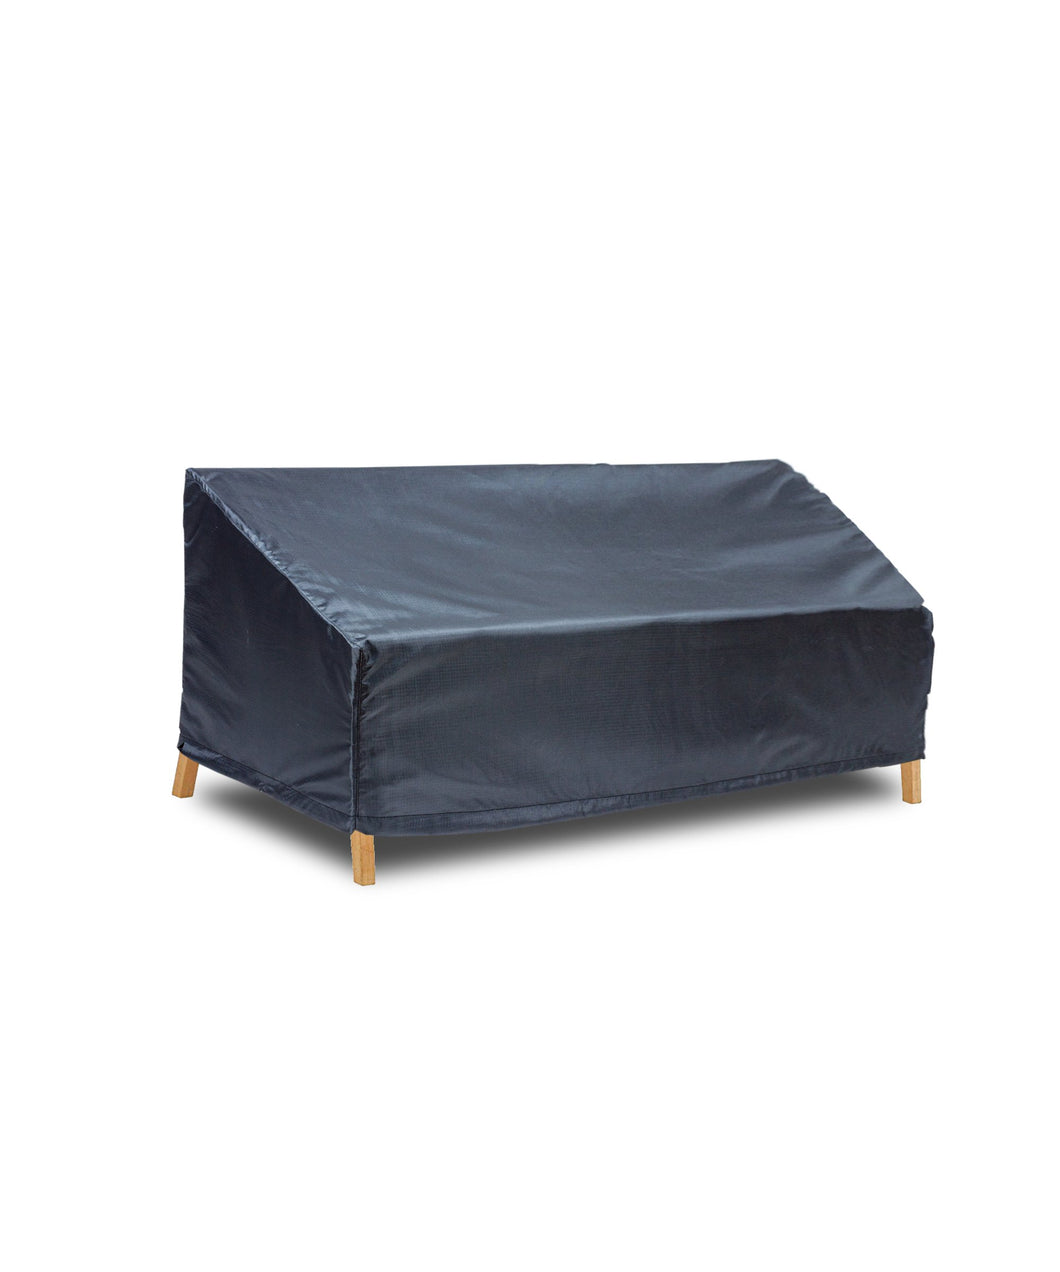 Sofa Cover Large - 91.73